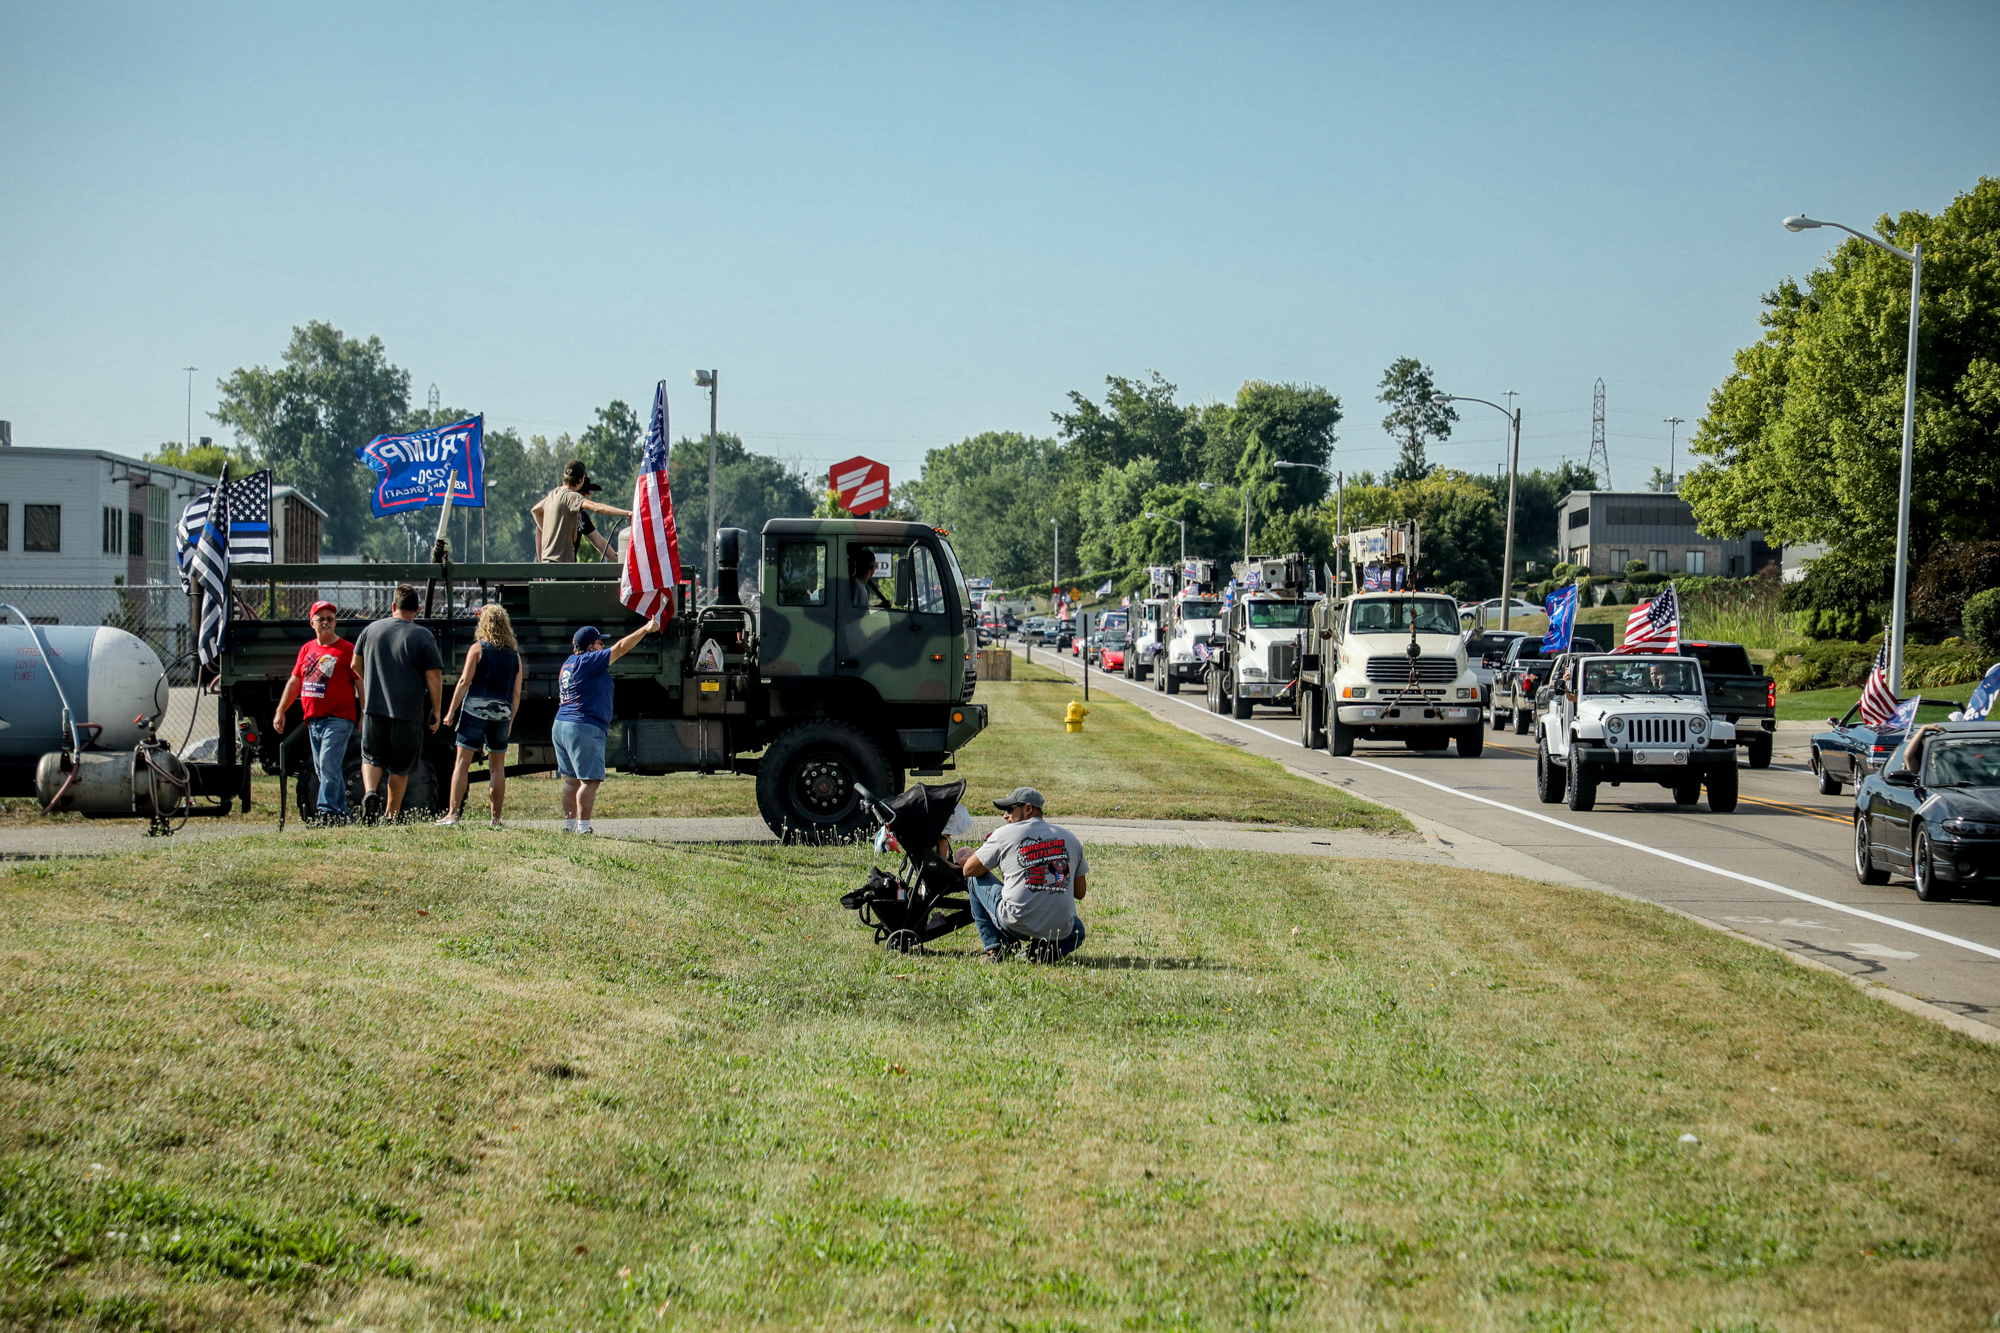 People drove around in classic cars and showed its support for President Donald Trump on 28th Street on Aug. 22, 2020. (Michael Buck/WOOD TV8)